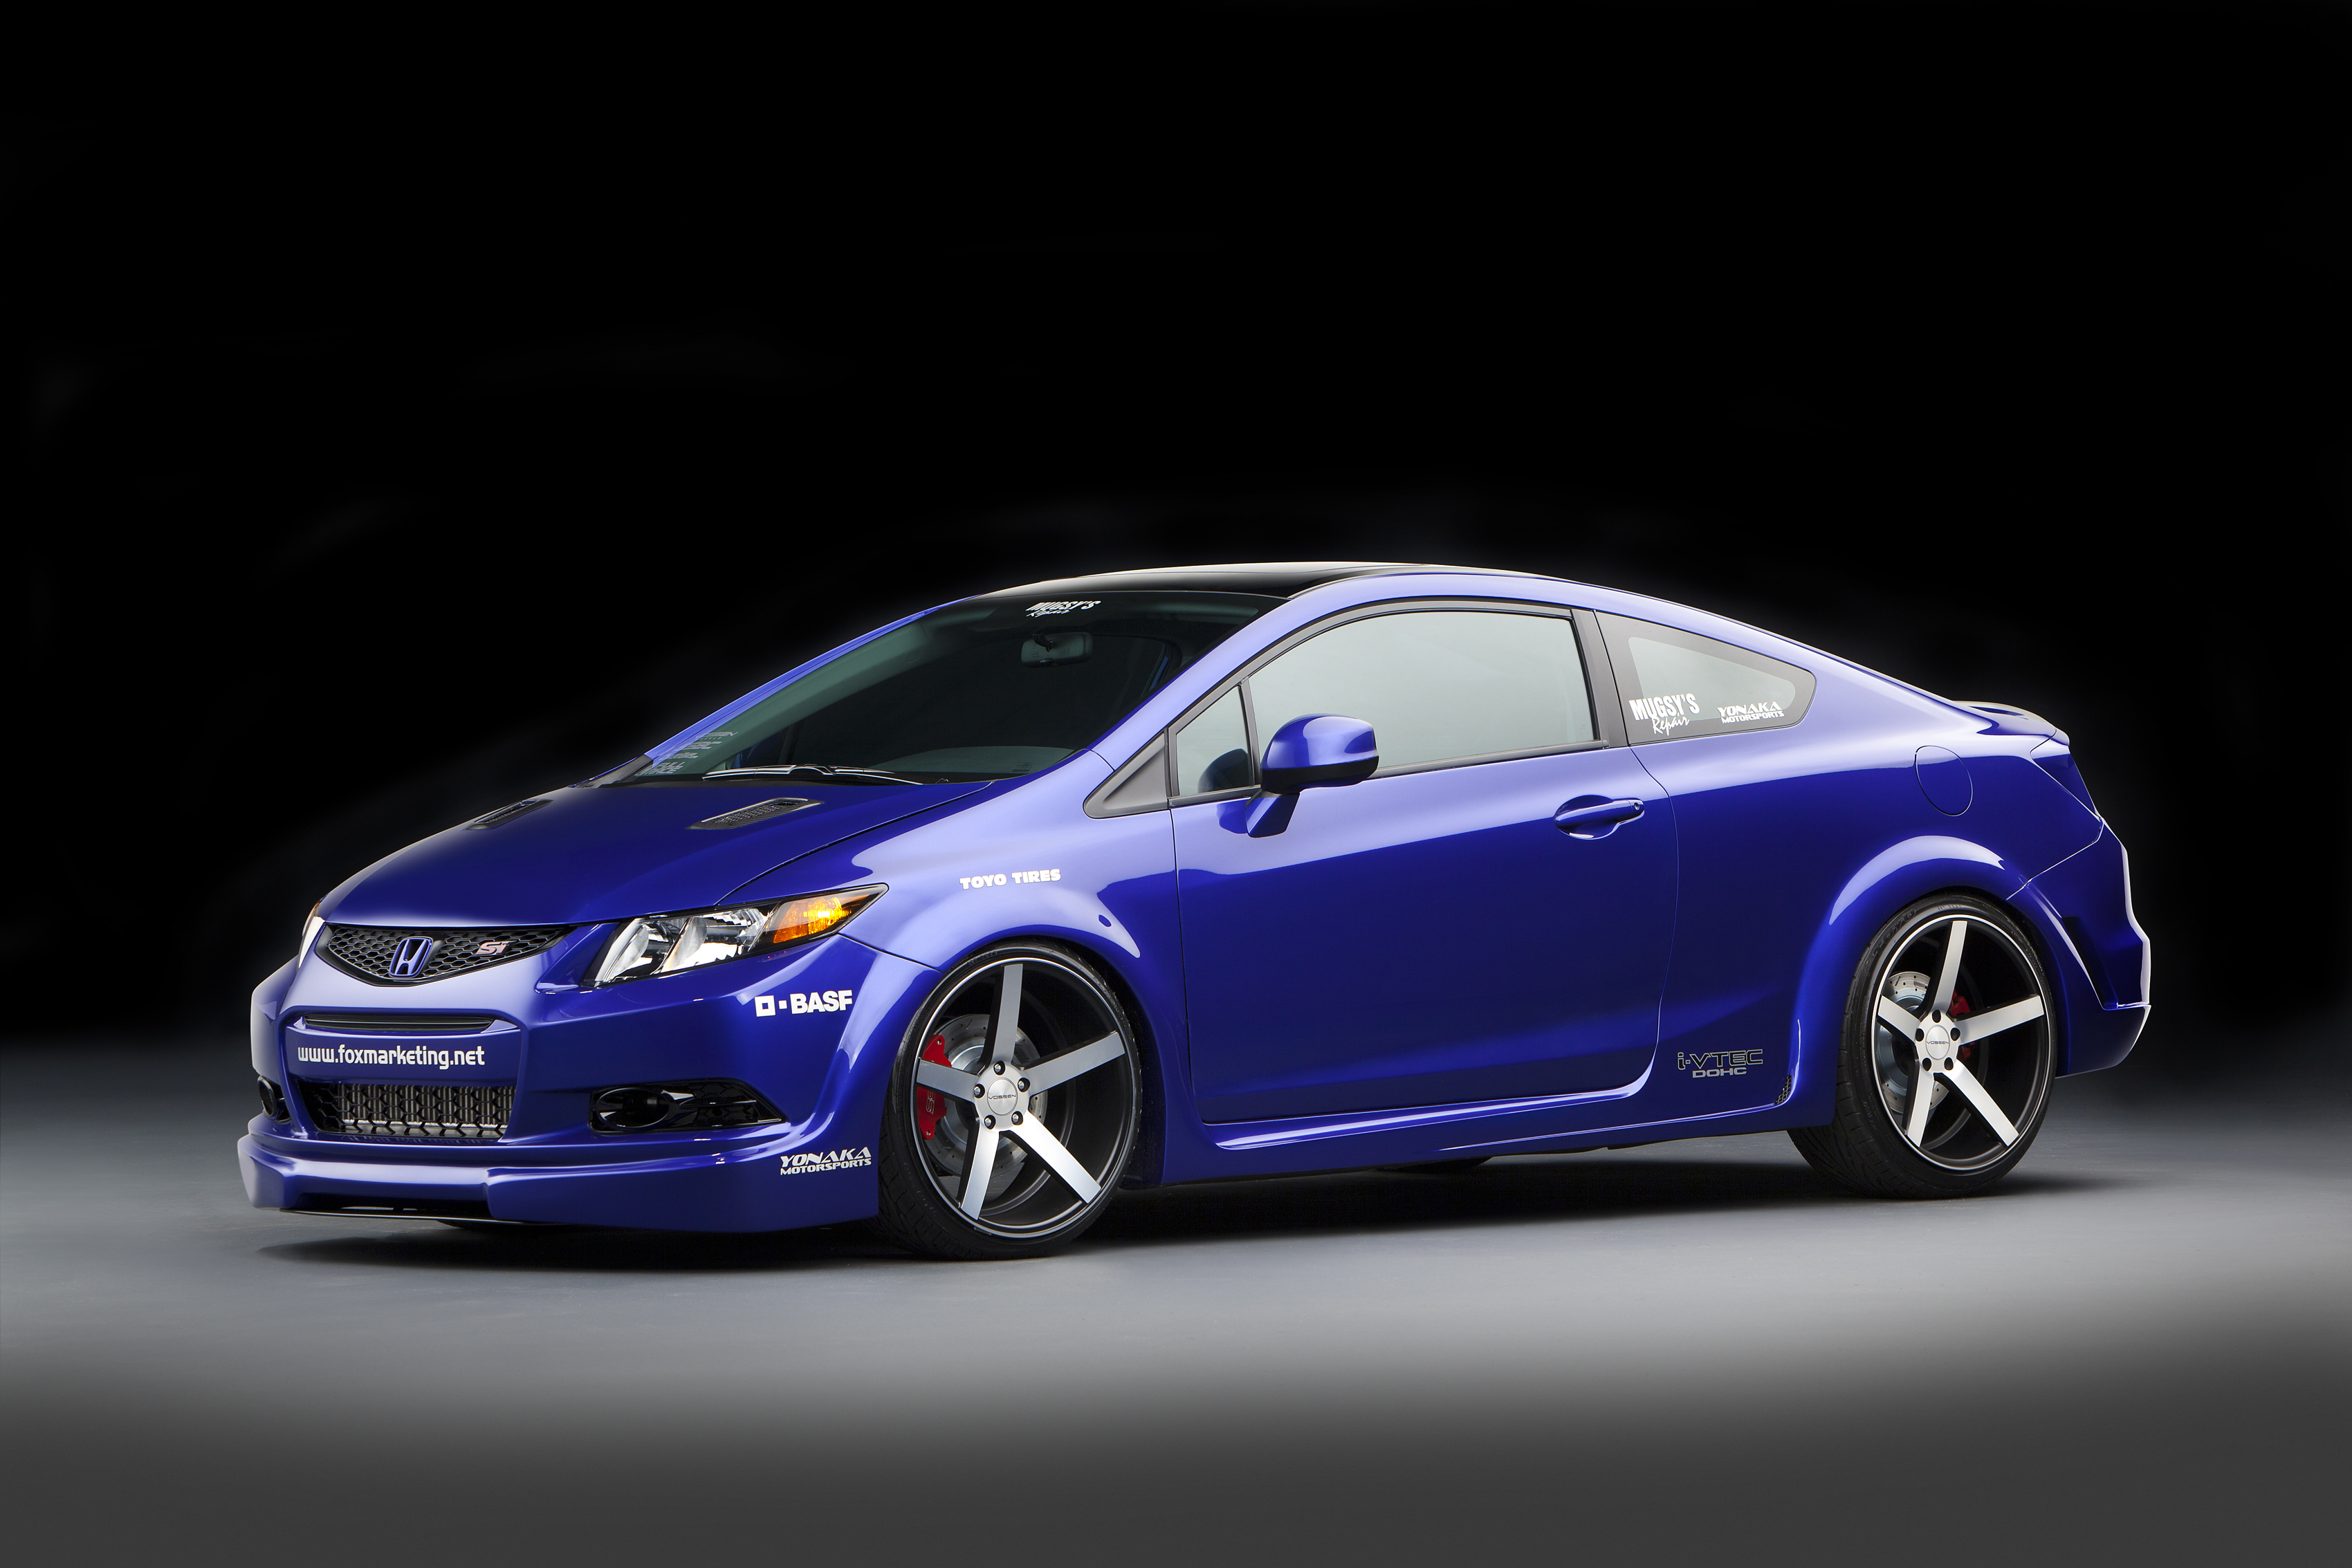 2012 honda civic si coupe by fox marketing review top speed. Black Bedroom Furniture Sets. Home Design Ideas